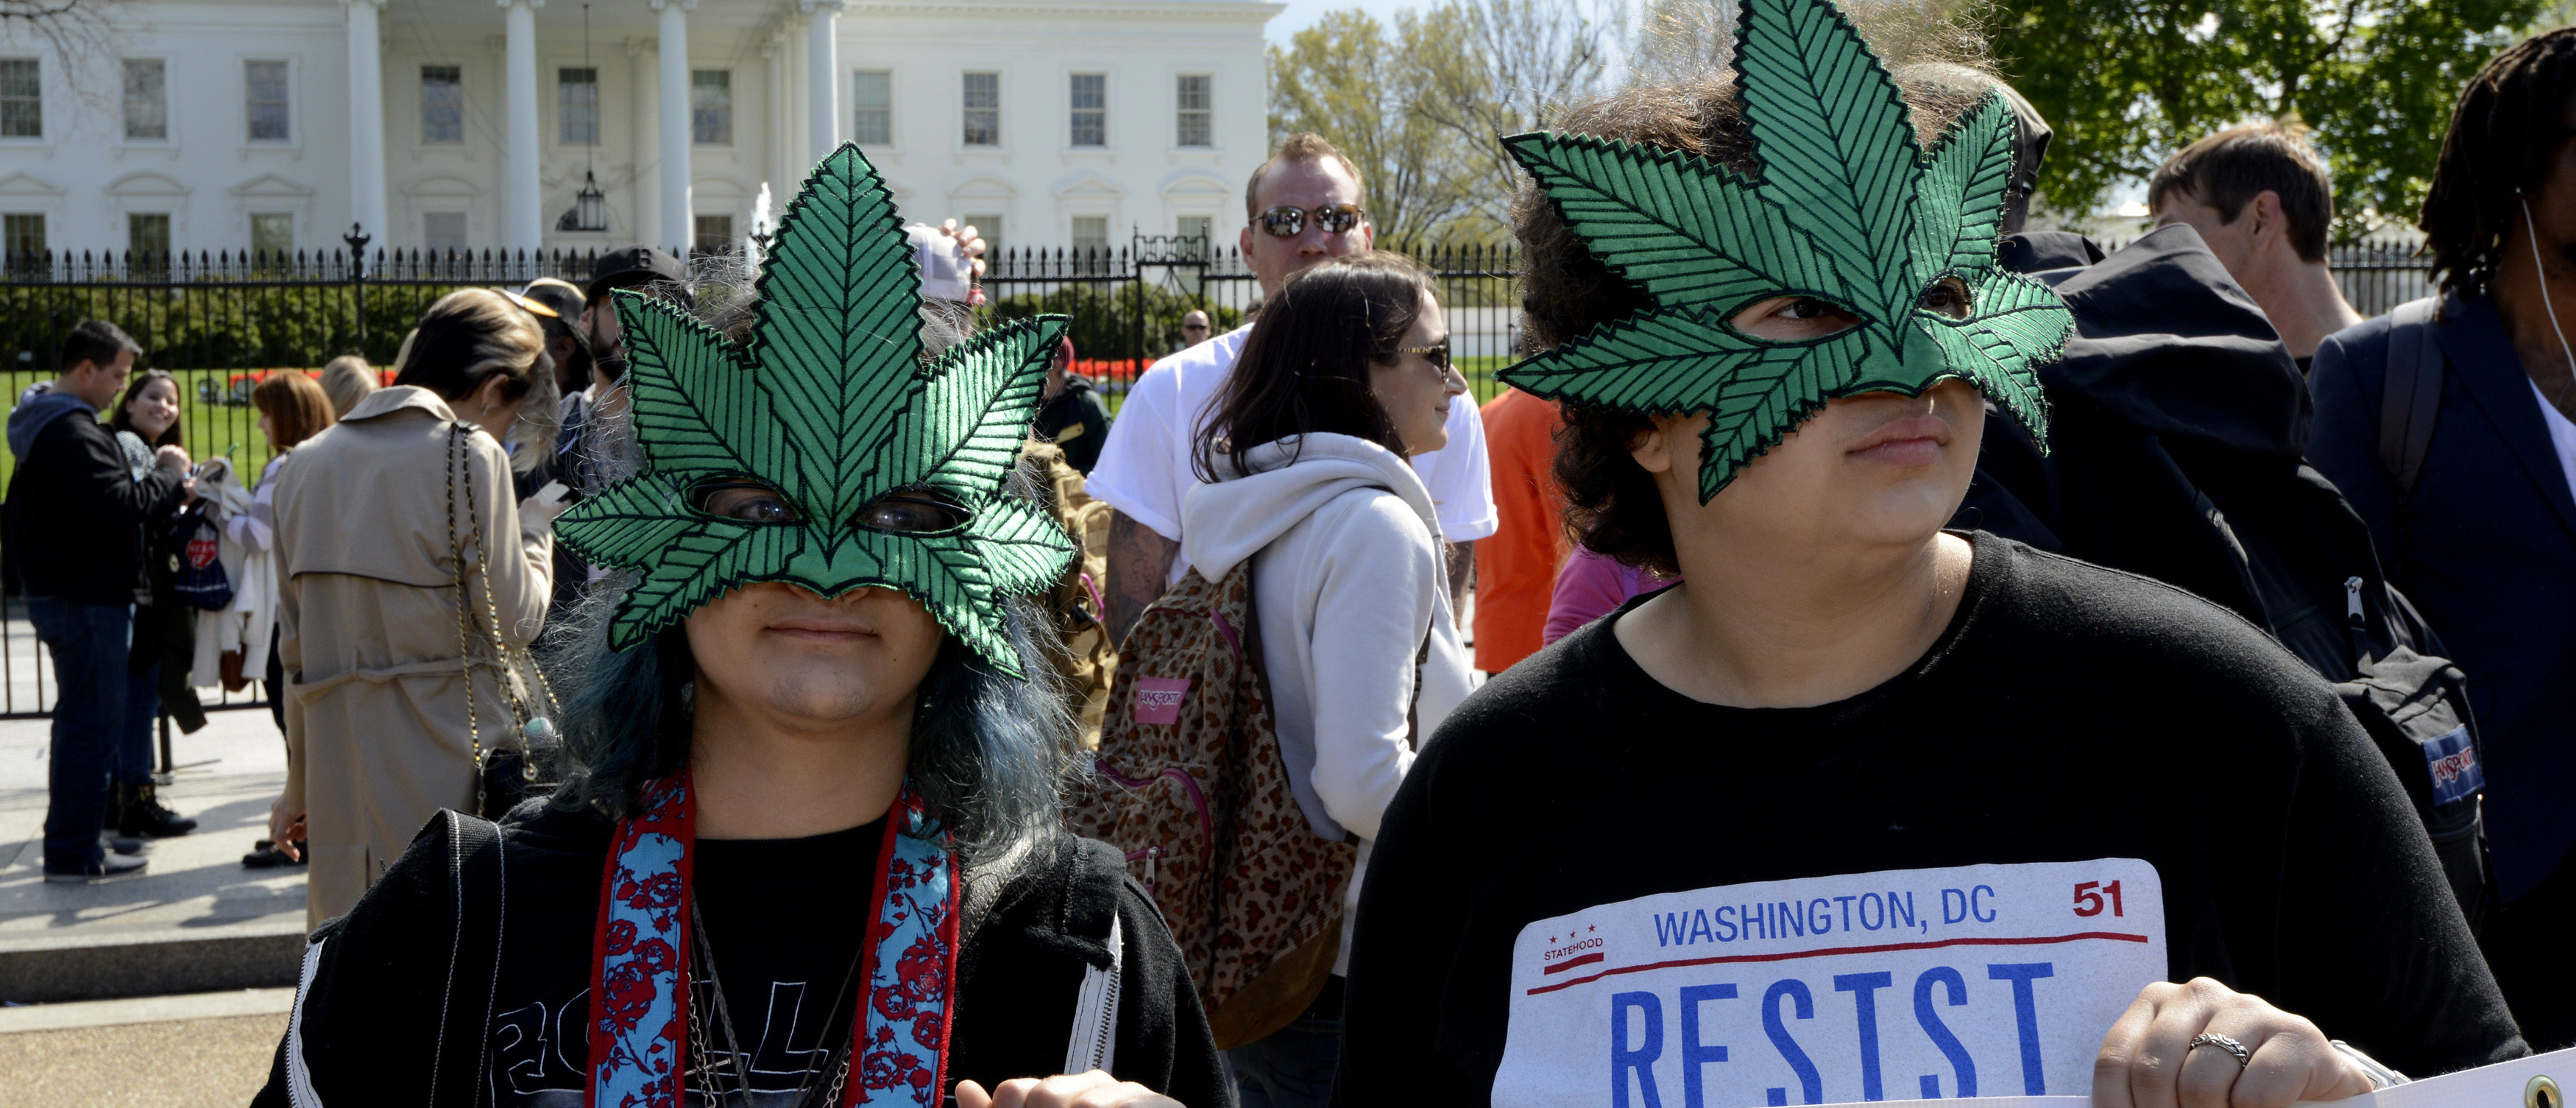 Jasmine Garcia (L) and Sal Ortiz, both of Washington, wear marijuana leaf masks as they join dozens of protestors for the legalization of marijuana in front of the White House, April 2, 2016, in Washington, DC. Many called for the de-criminalization of pot and pointed to the medical benefits. At least two smokers were cited with mere possession, a $25 fine in the District of Columbia. / AFP / Mike Theiler (Photo credit should read MIKE THEILER/AFP/Getty Images)